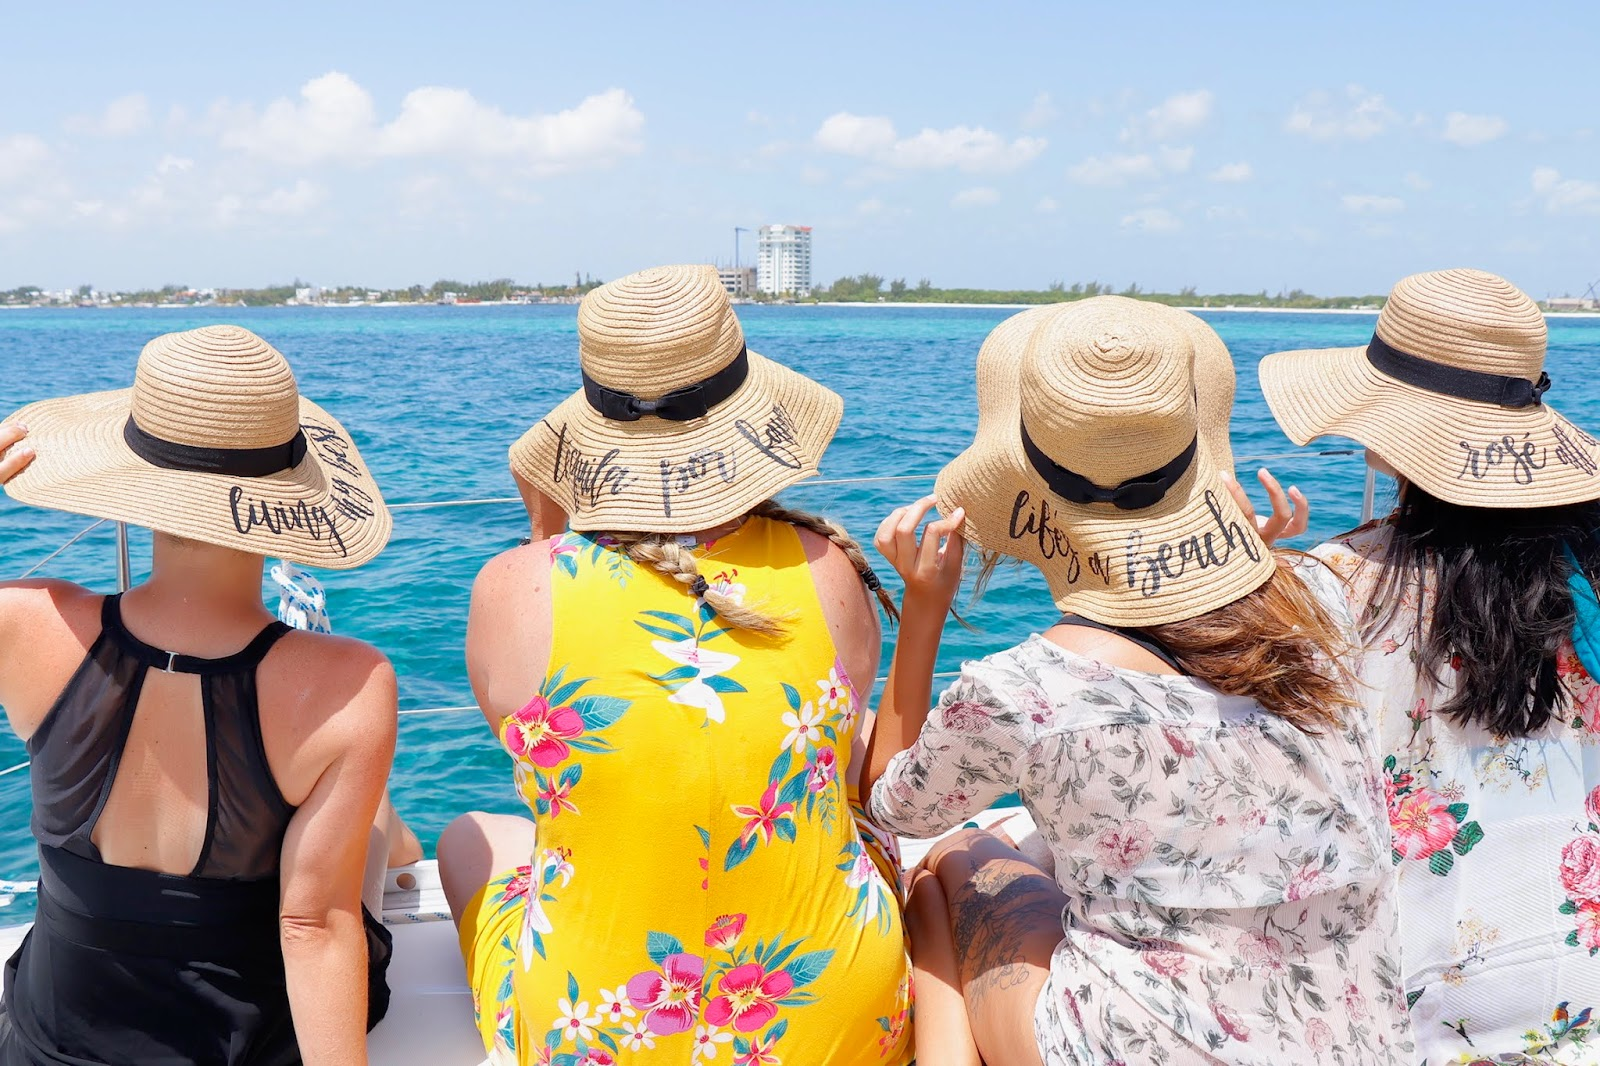 four women look out over the gulf of mexico wearing floppy beach hats with cute sayings